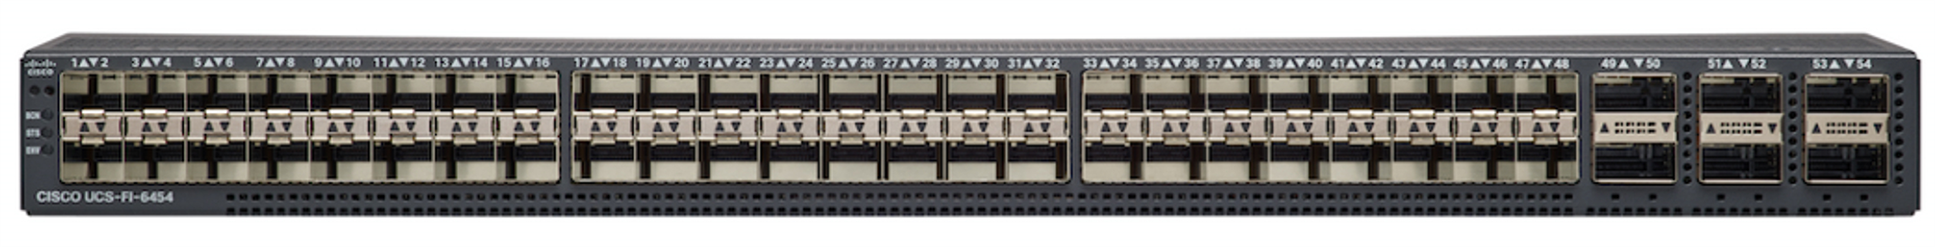 Cisco UCS 6454 54-Port Fabric Interconnect_Rear view